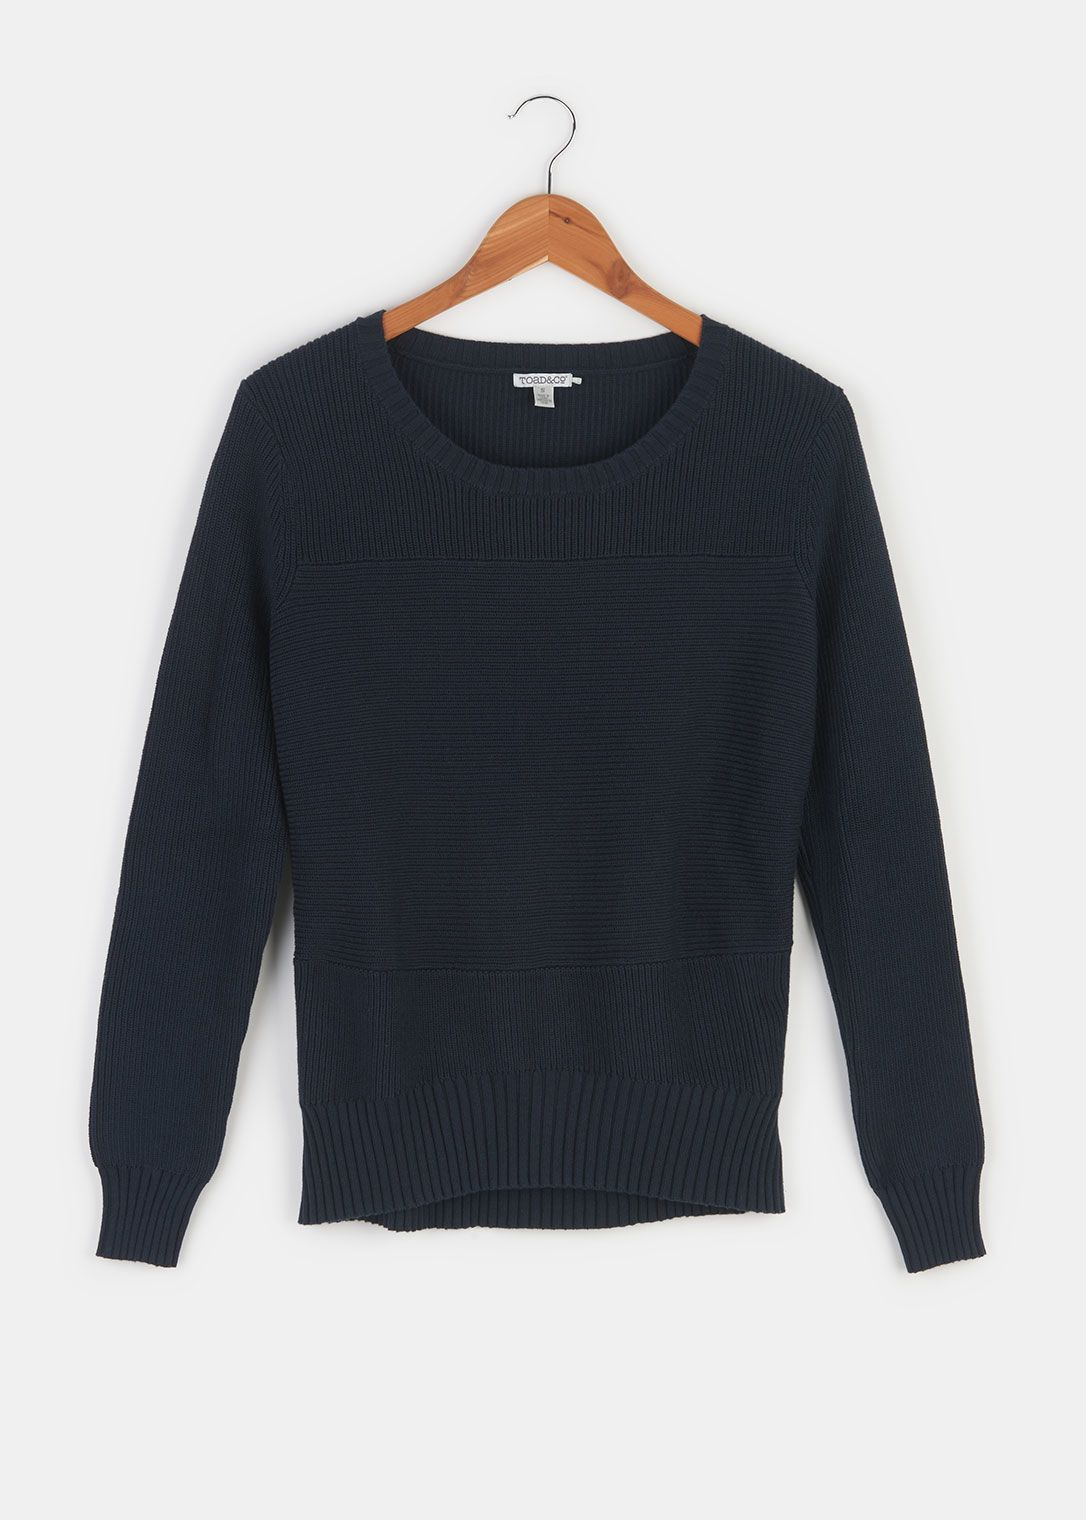 Organic Cotton Hearthstone Sweater | Rodale's | Fall Fashion ...